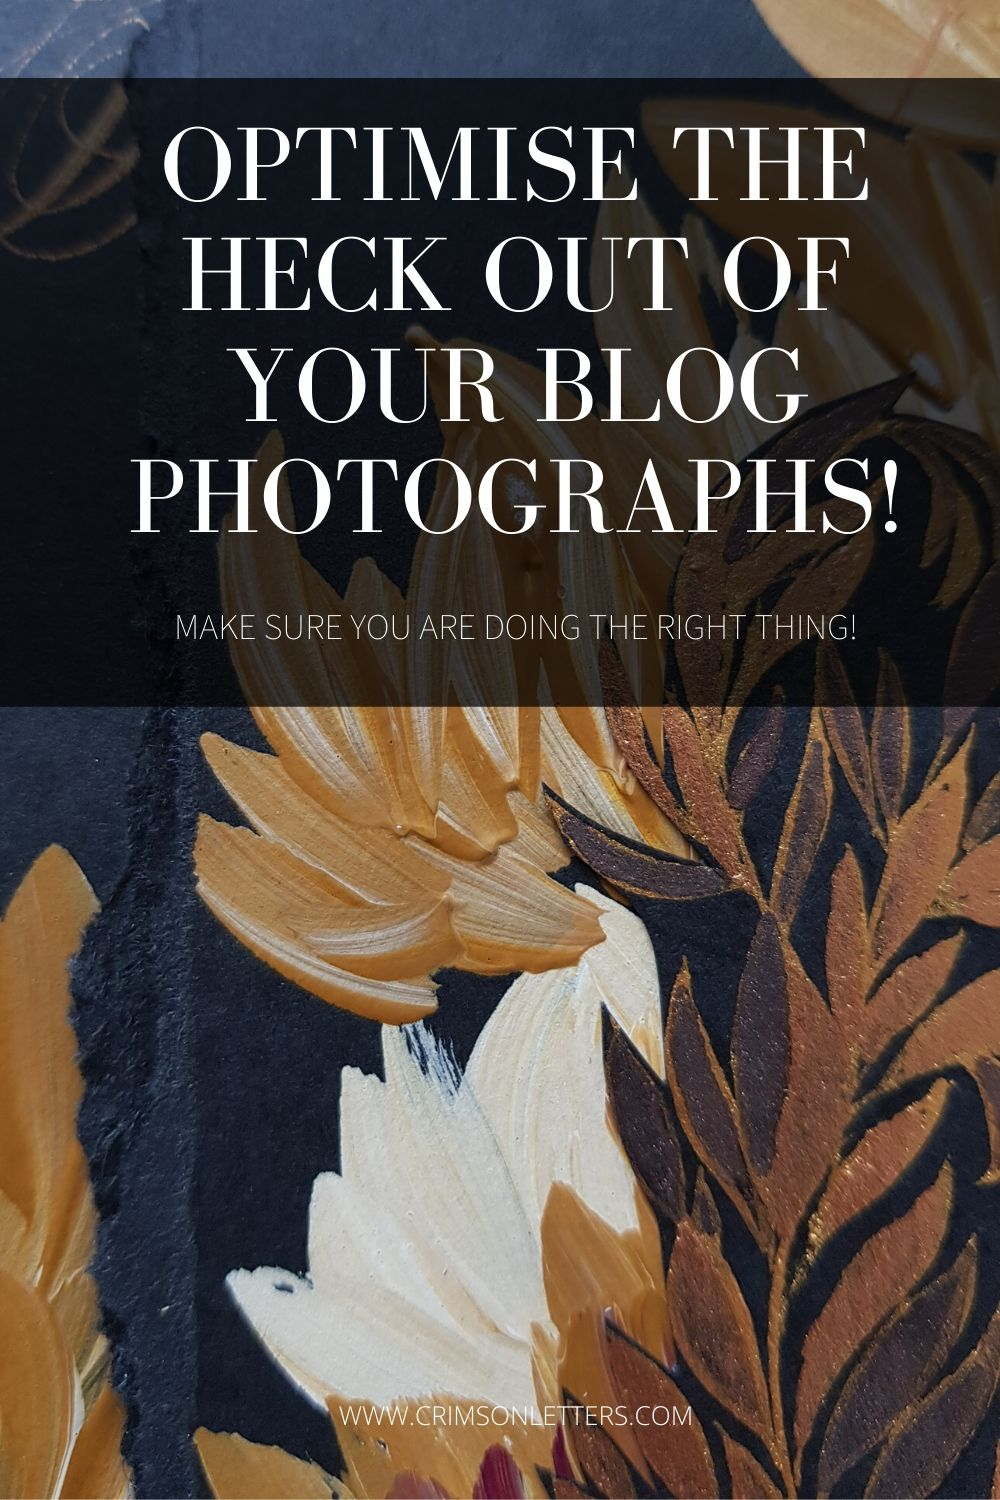 Optimise your photographs for your blog